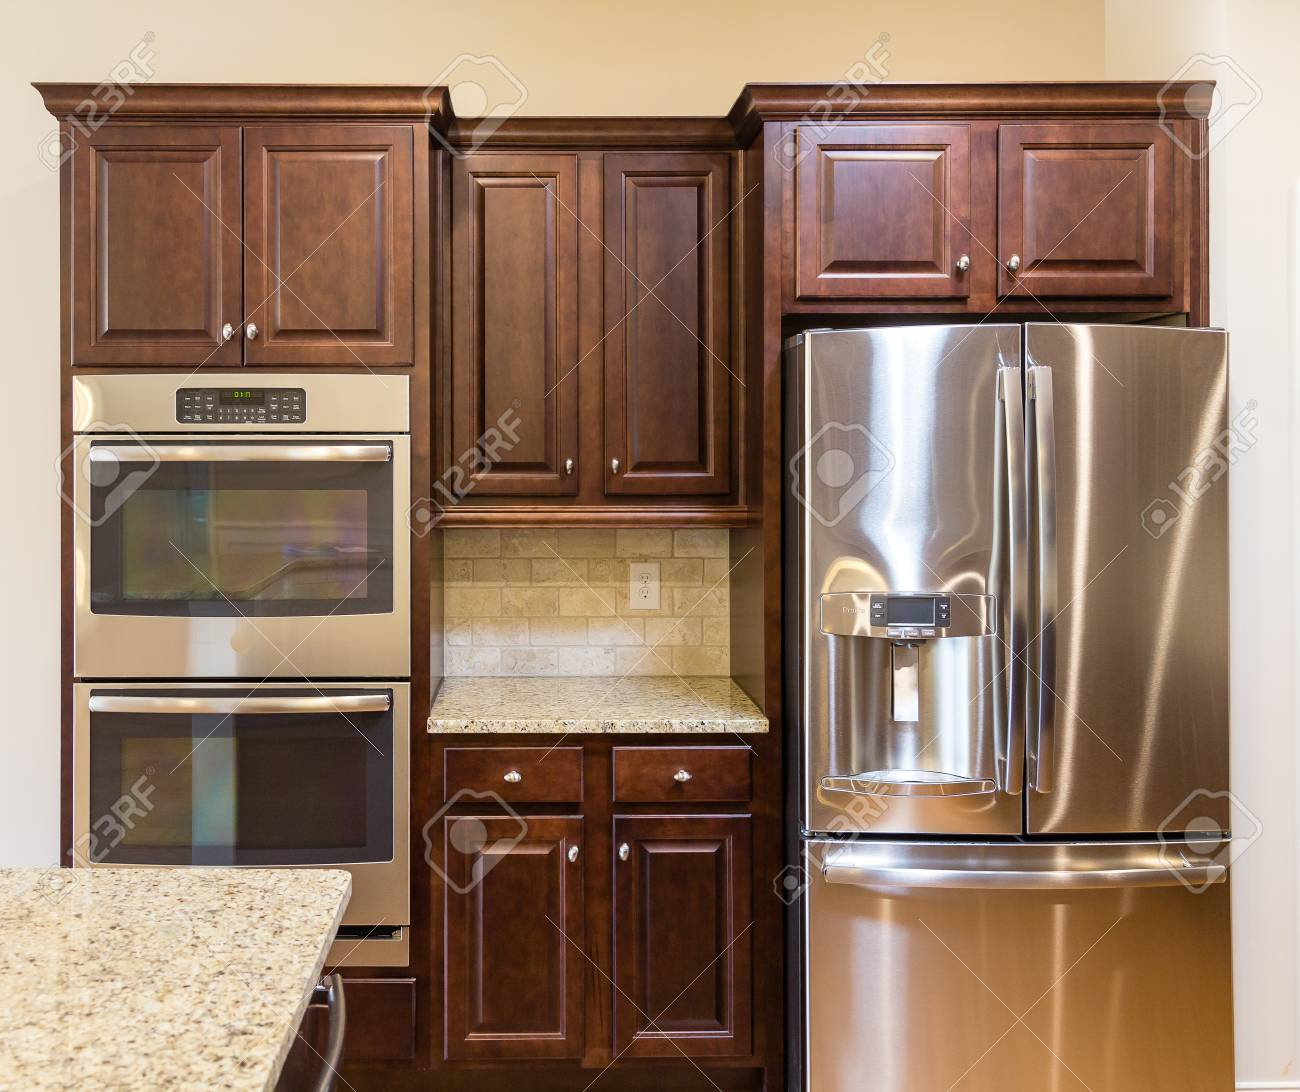 Stainless Steel Appliances, Granite Countertops And Dark Wood Cabinets In A  New Kitchen Stock Photo